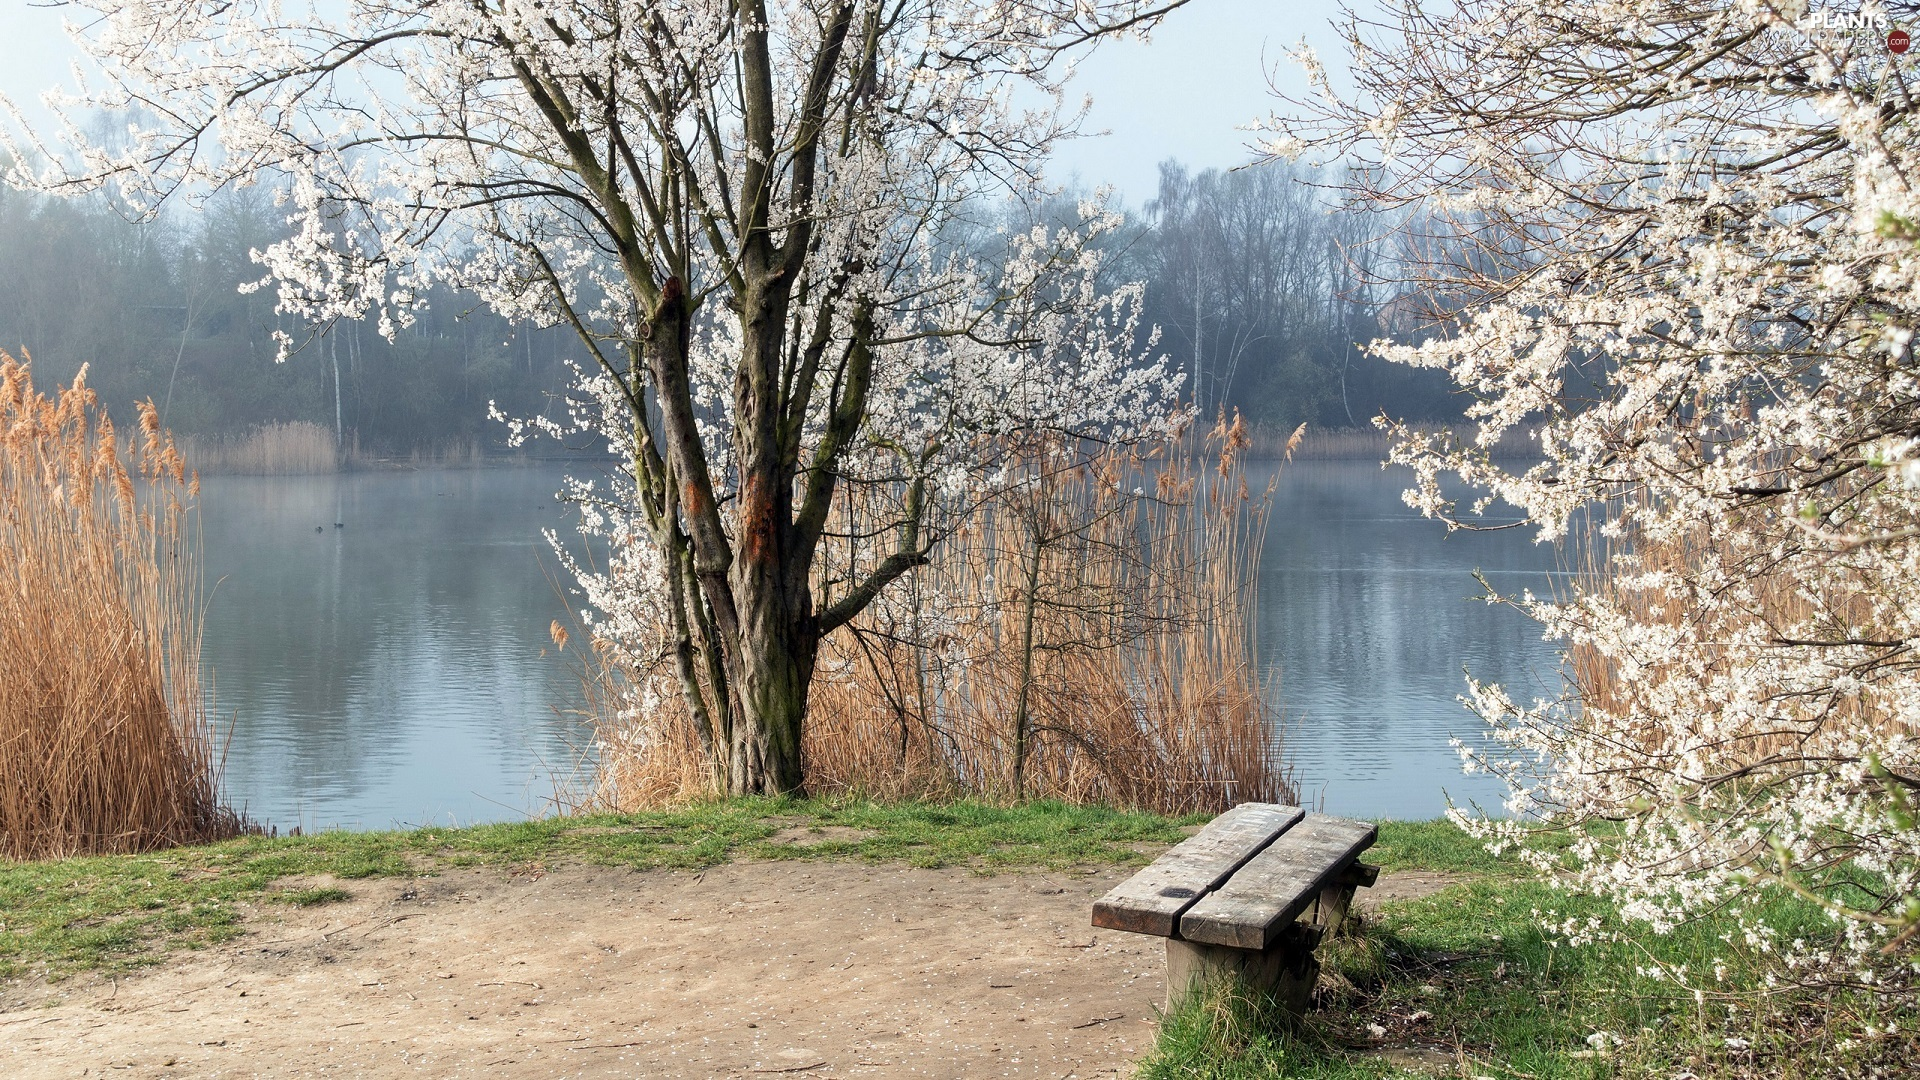 flourishing, trees, Bench, viewes, grass, River, Spring, high